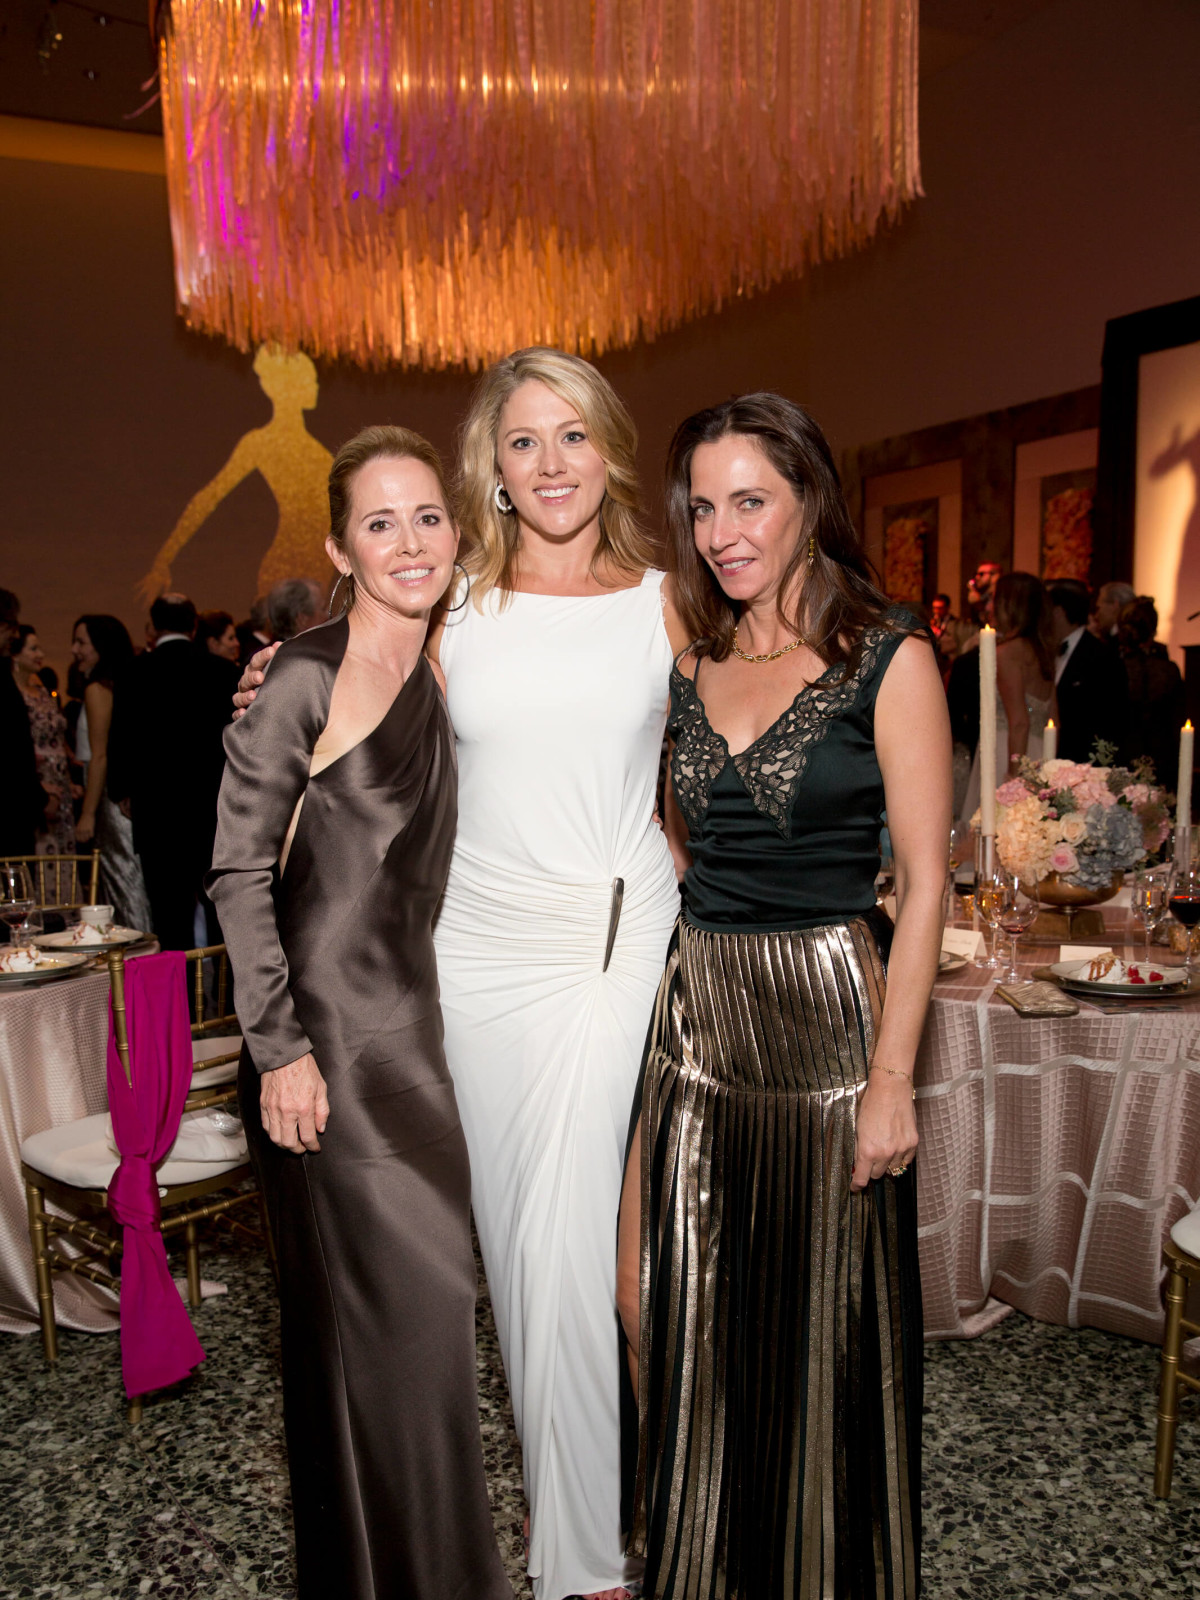 Martha Long, Amy Purvis, Aliyya Stude at Museum of Fine Arts Grand Gala Ball